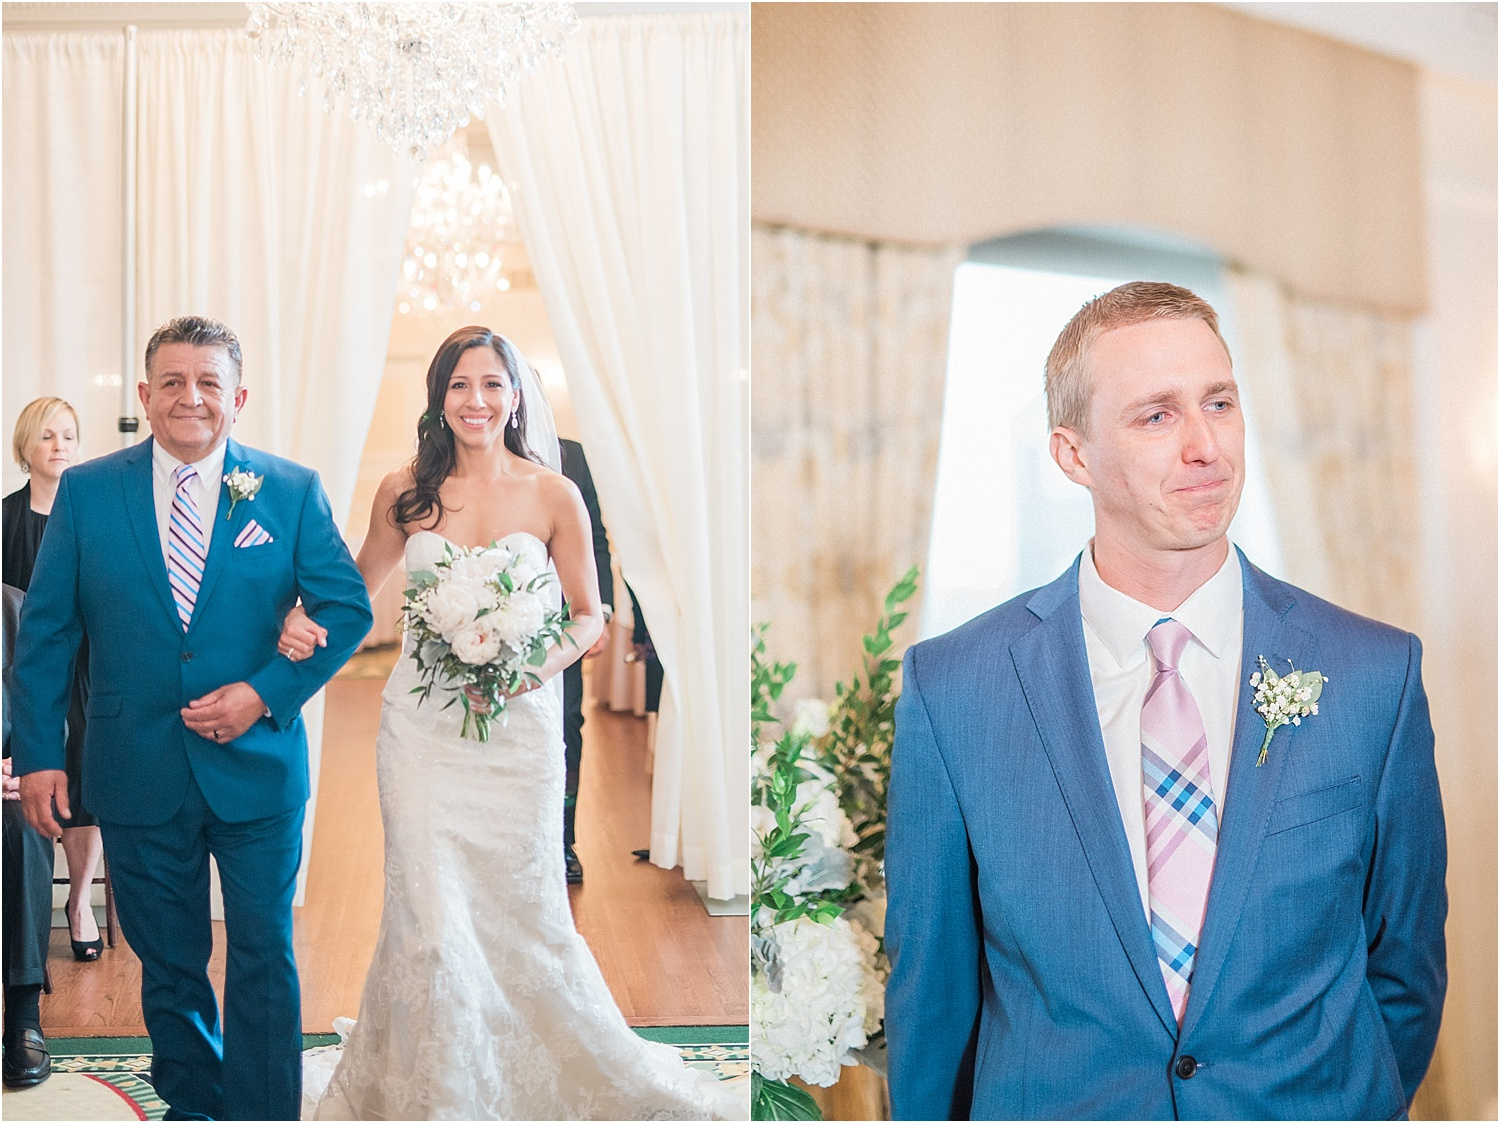 New Jersey wedding Photographer bright natural airy sweet soft wedding Photographer Faves-108.jpg